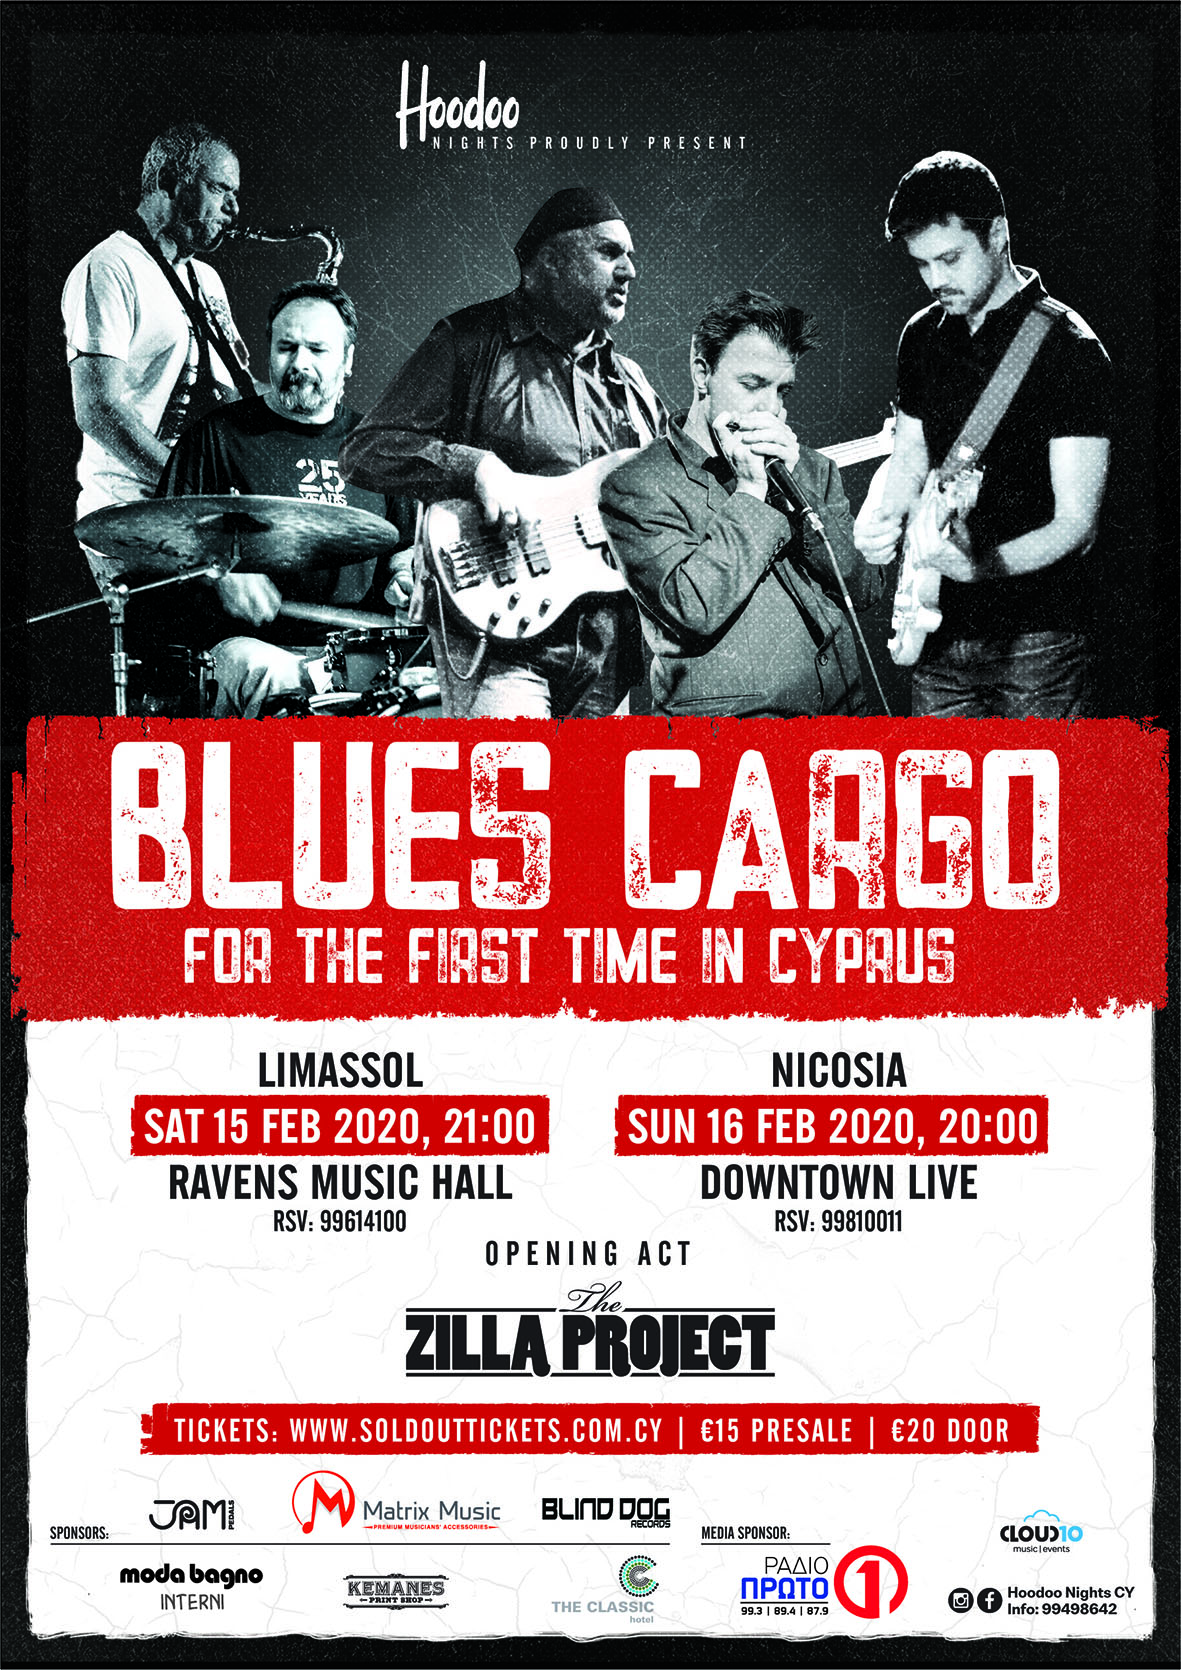 BLUES CARGO - TWO SHOWS IN CYPRUS